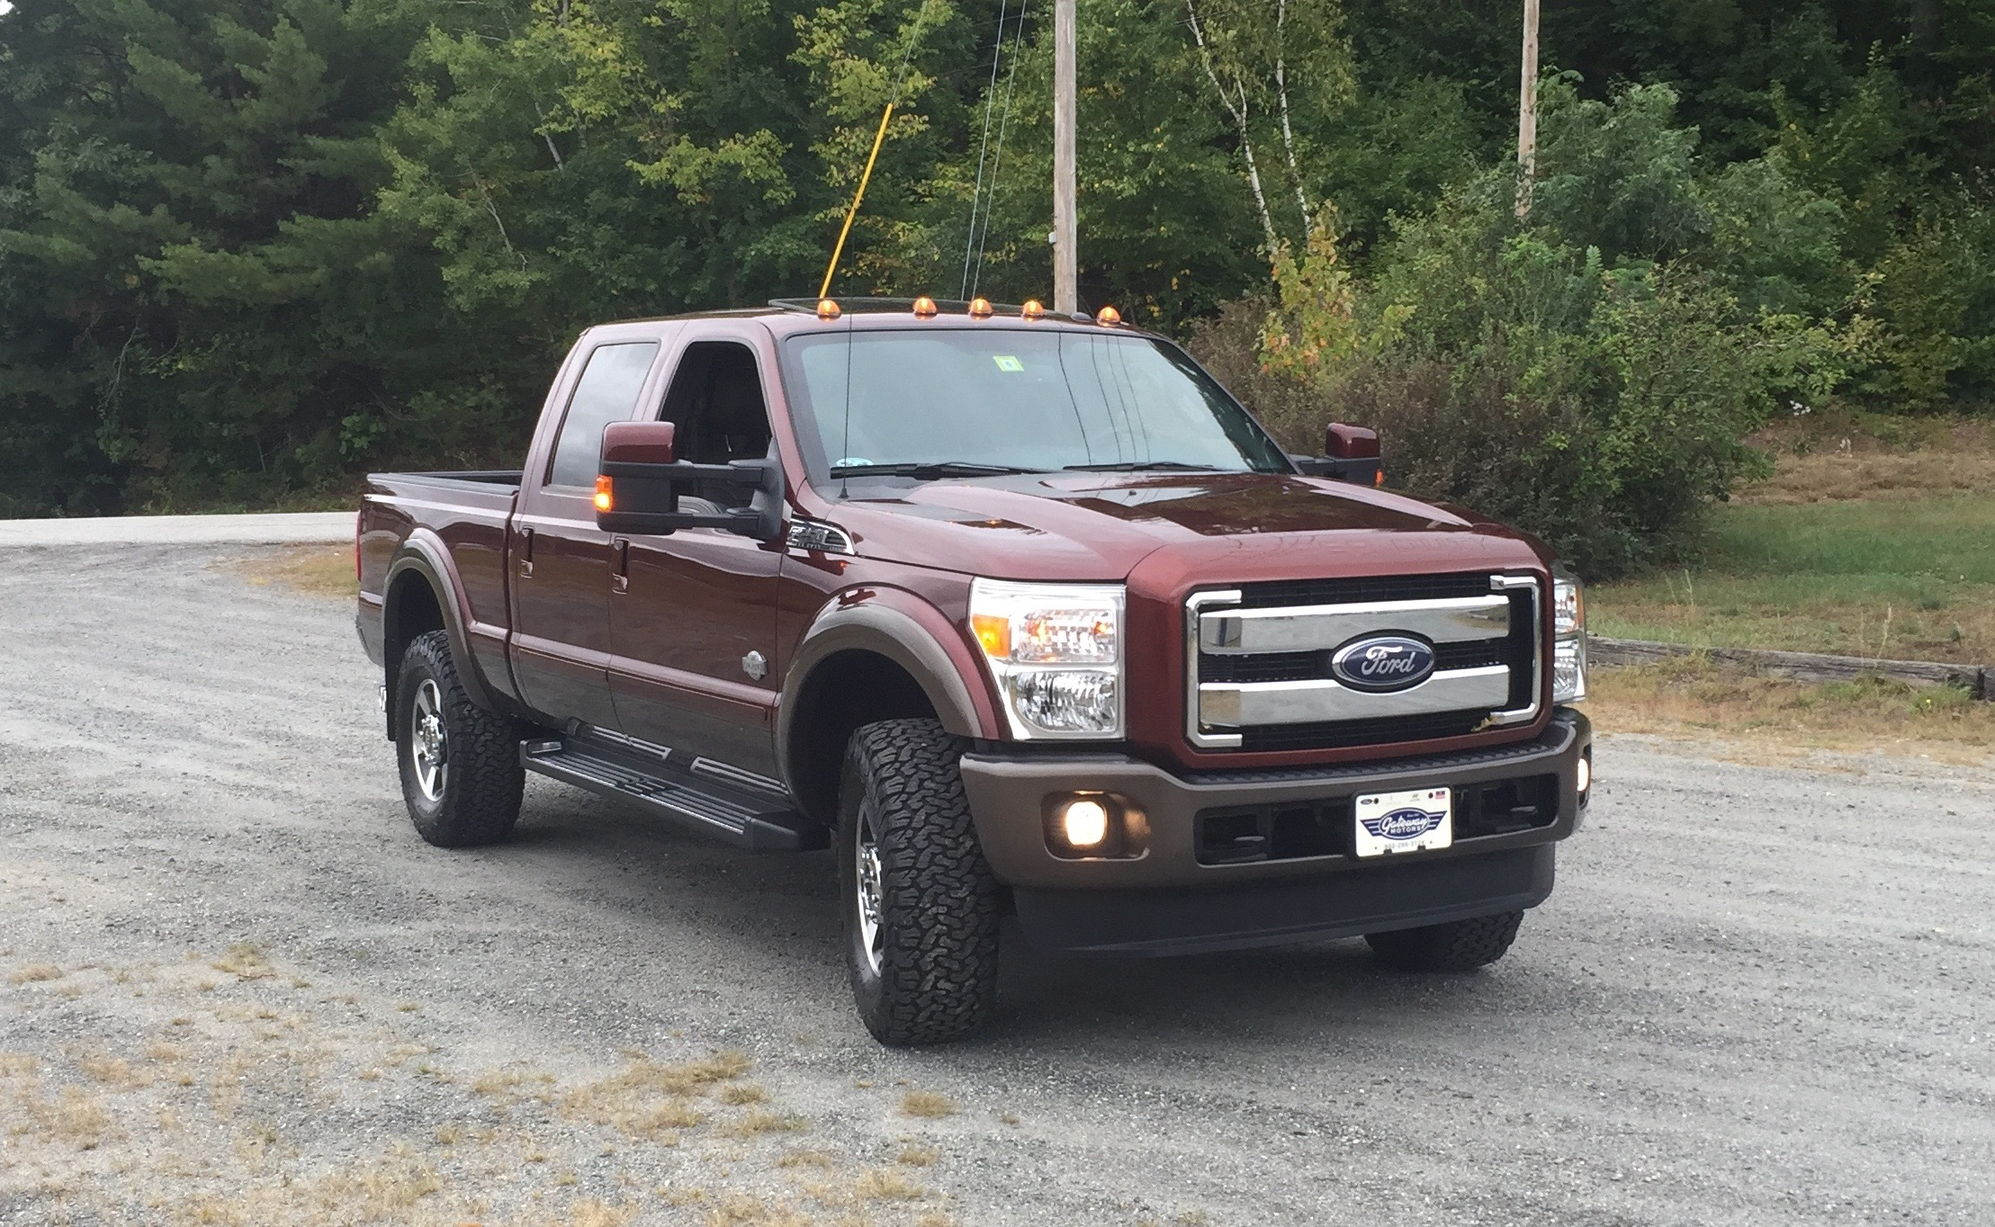 buyers of used trucks with oversize tires beware and also be aware service intervals may need to be done sooner since the miles will be slightly off